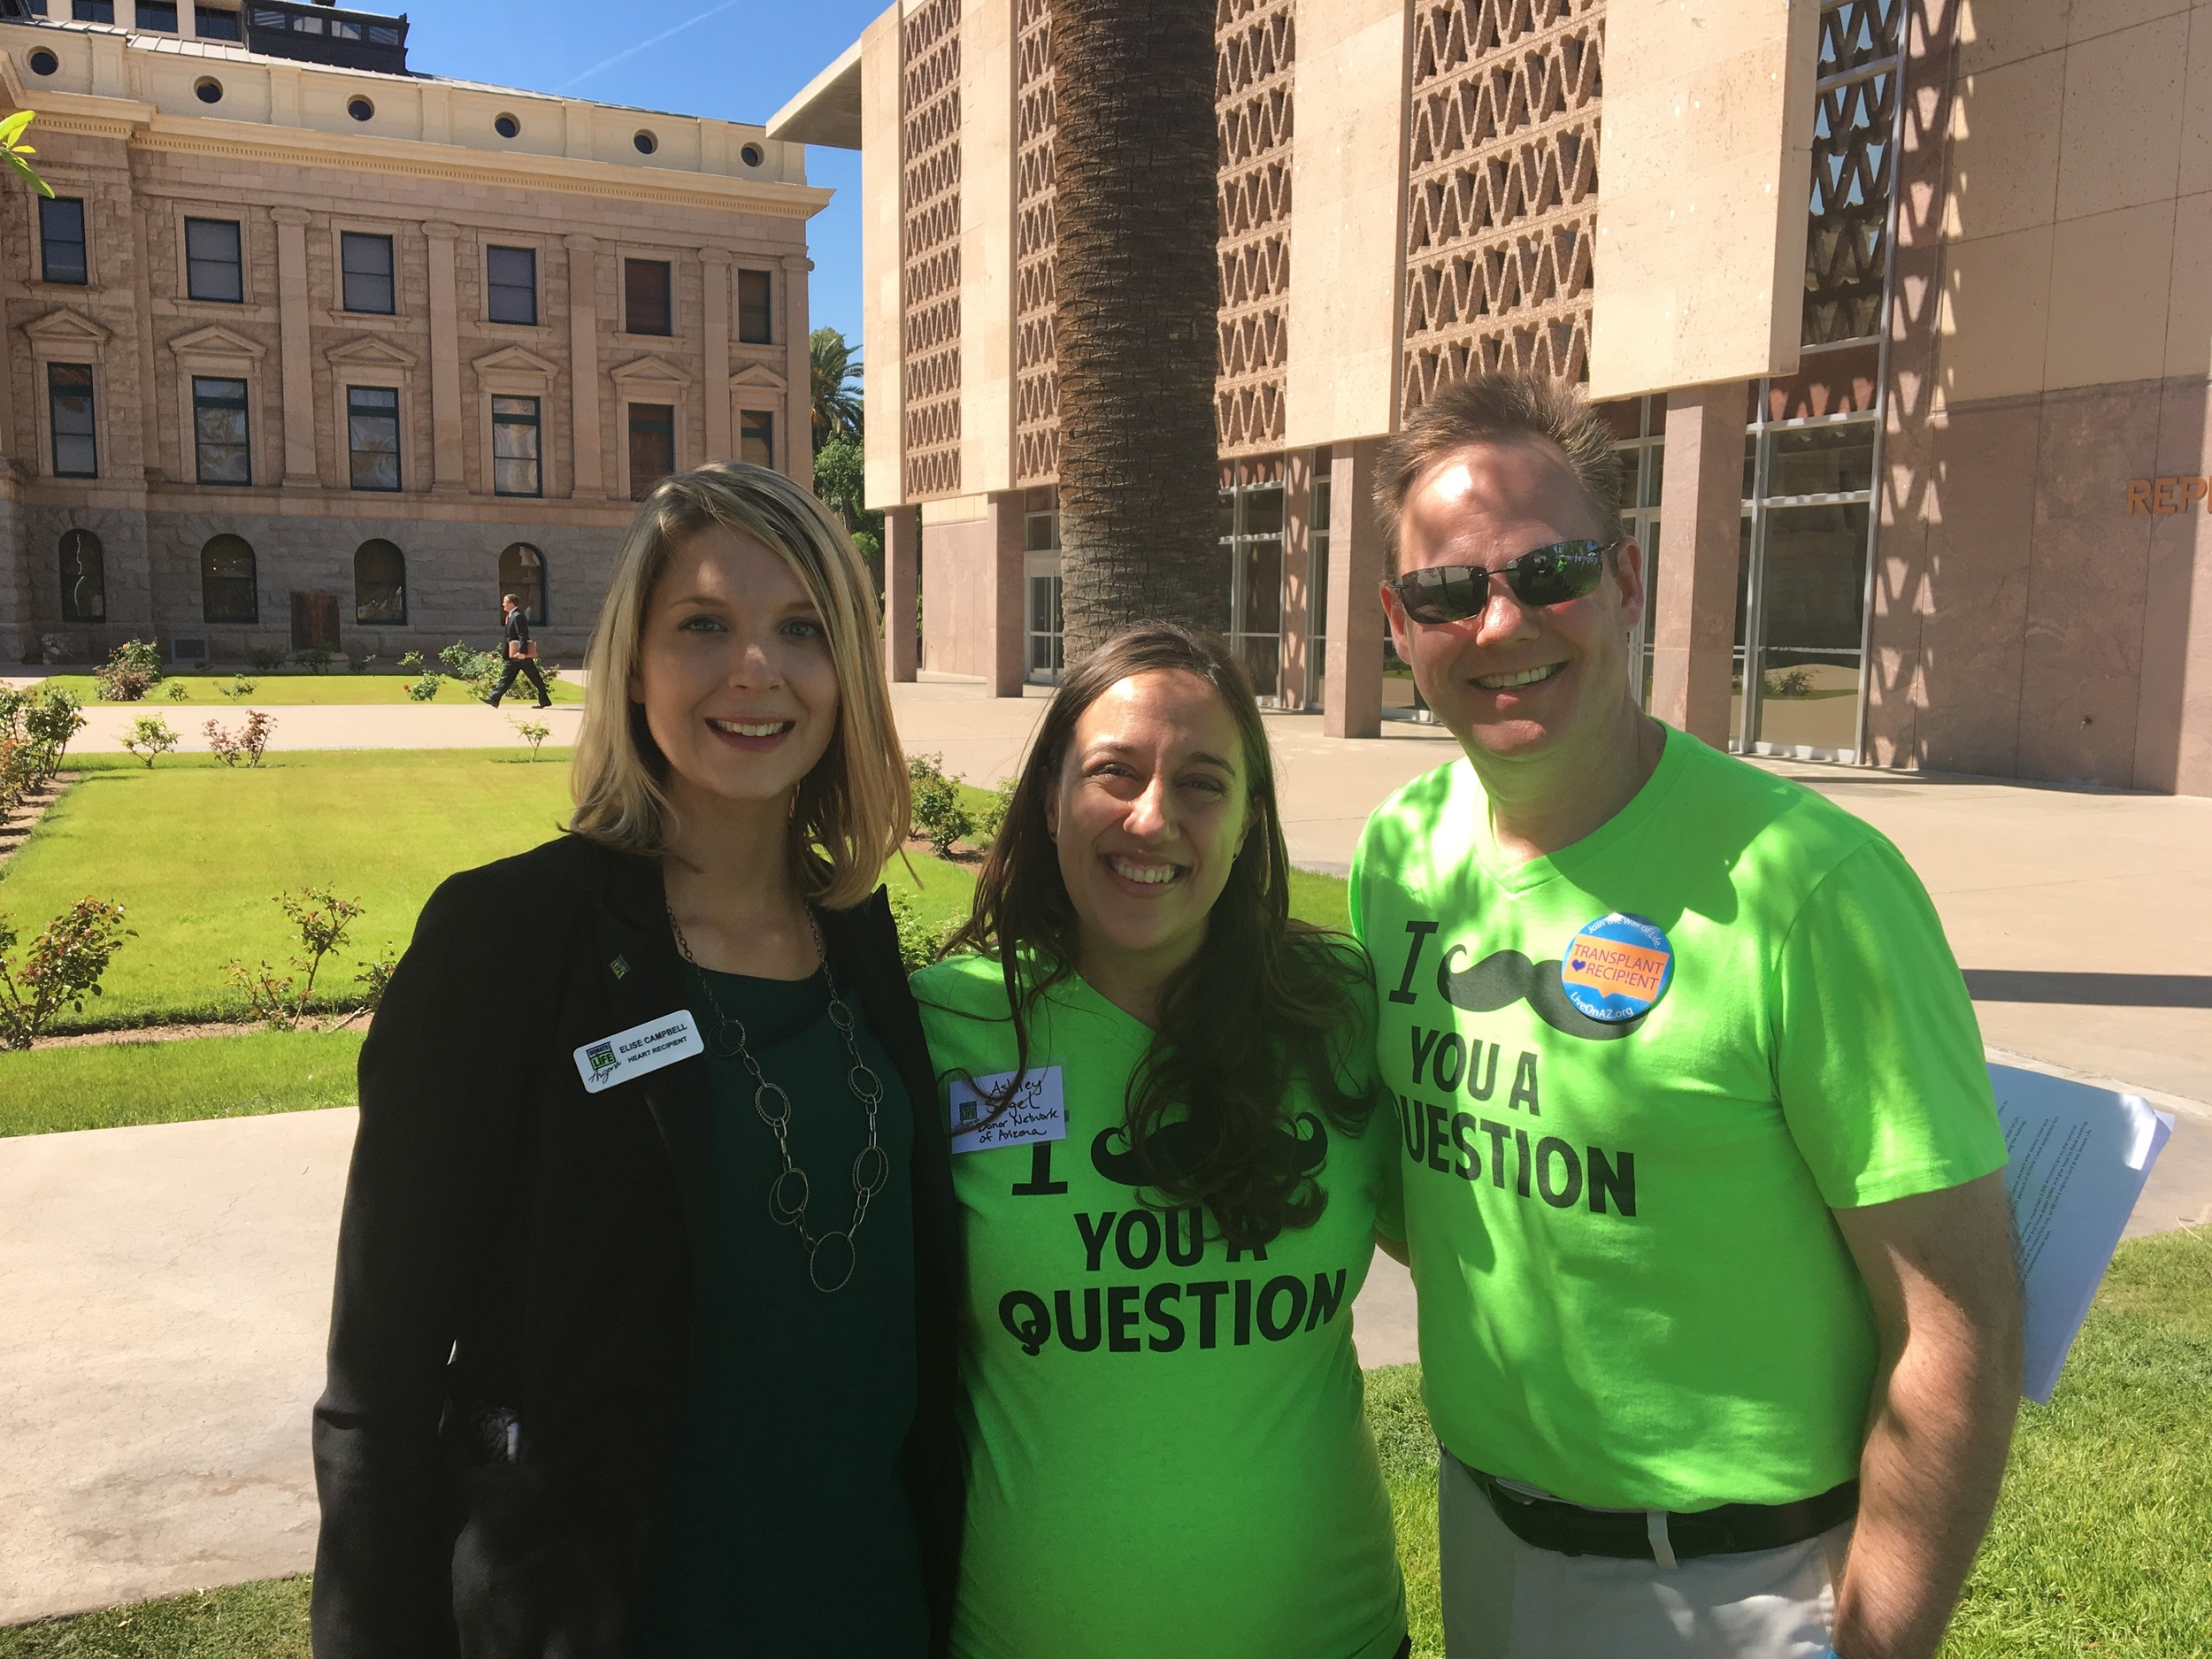 Here I am with my good friend and fellow Heart Recipient Elise (Far Left) and Ashley who is one of the event coordinators for Donor Network Arizona. Elise also participated in meetings with legislators along with Donate Life representatives to promote the cause - she is a big inspiration to many!